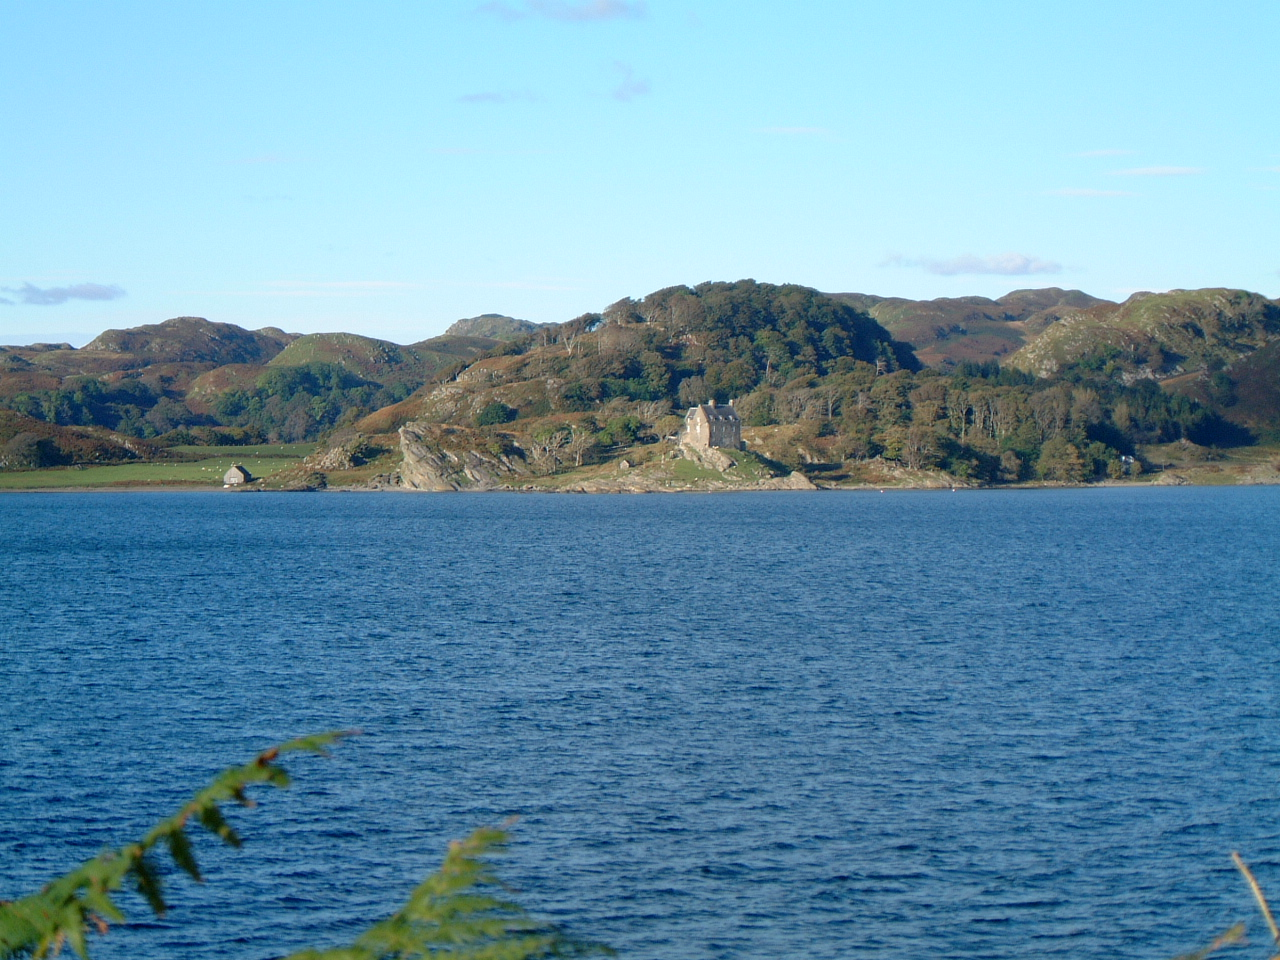 View from Crinan to Portalloch Castle on Knapdale Forest Hills over Loch Crinan